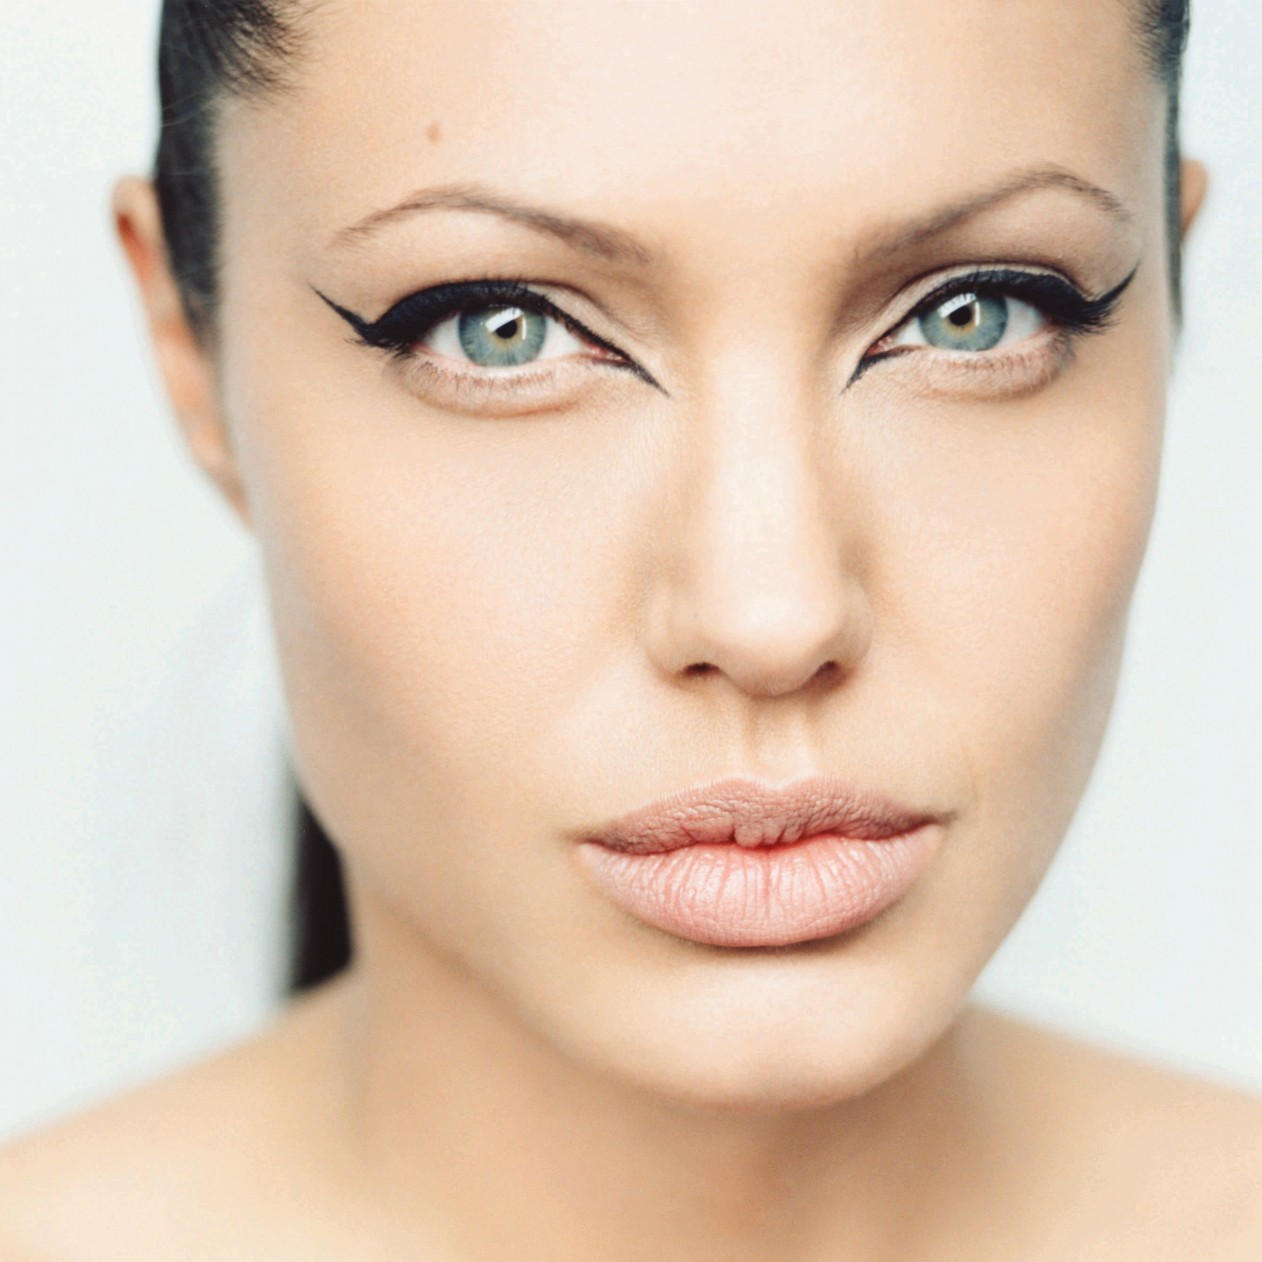 Angelina Jolie Wallpaper for Apple iPad mini